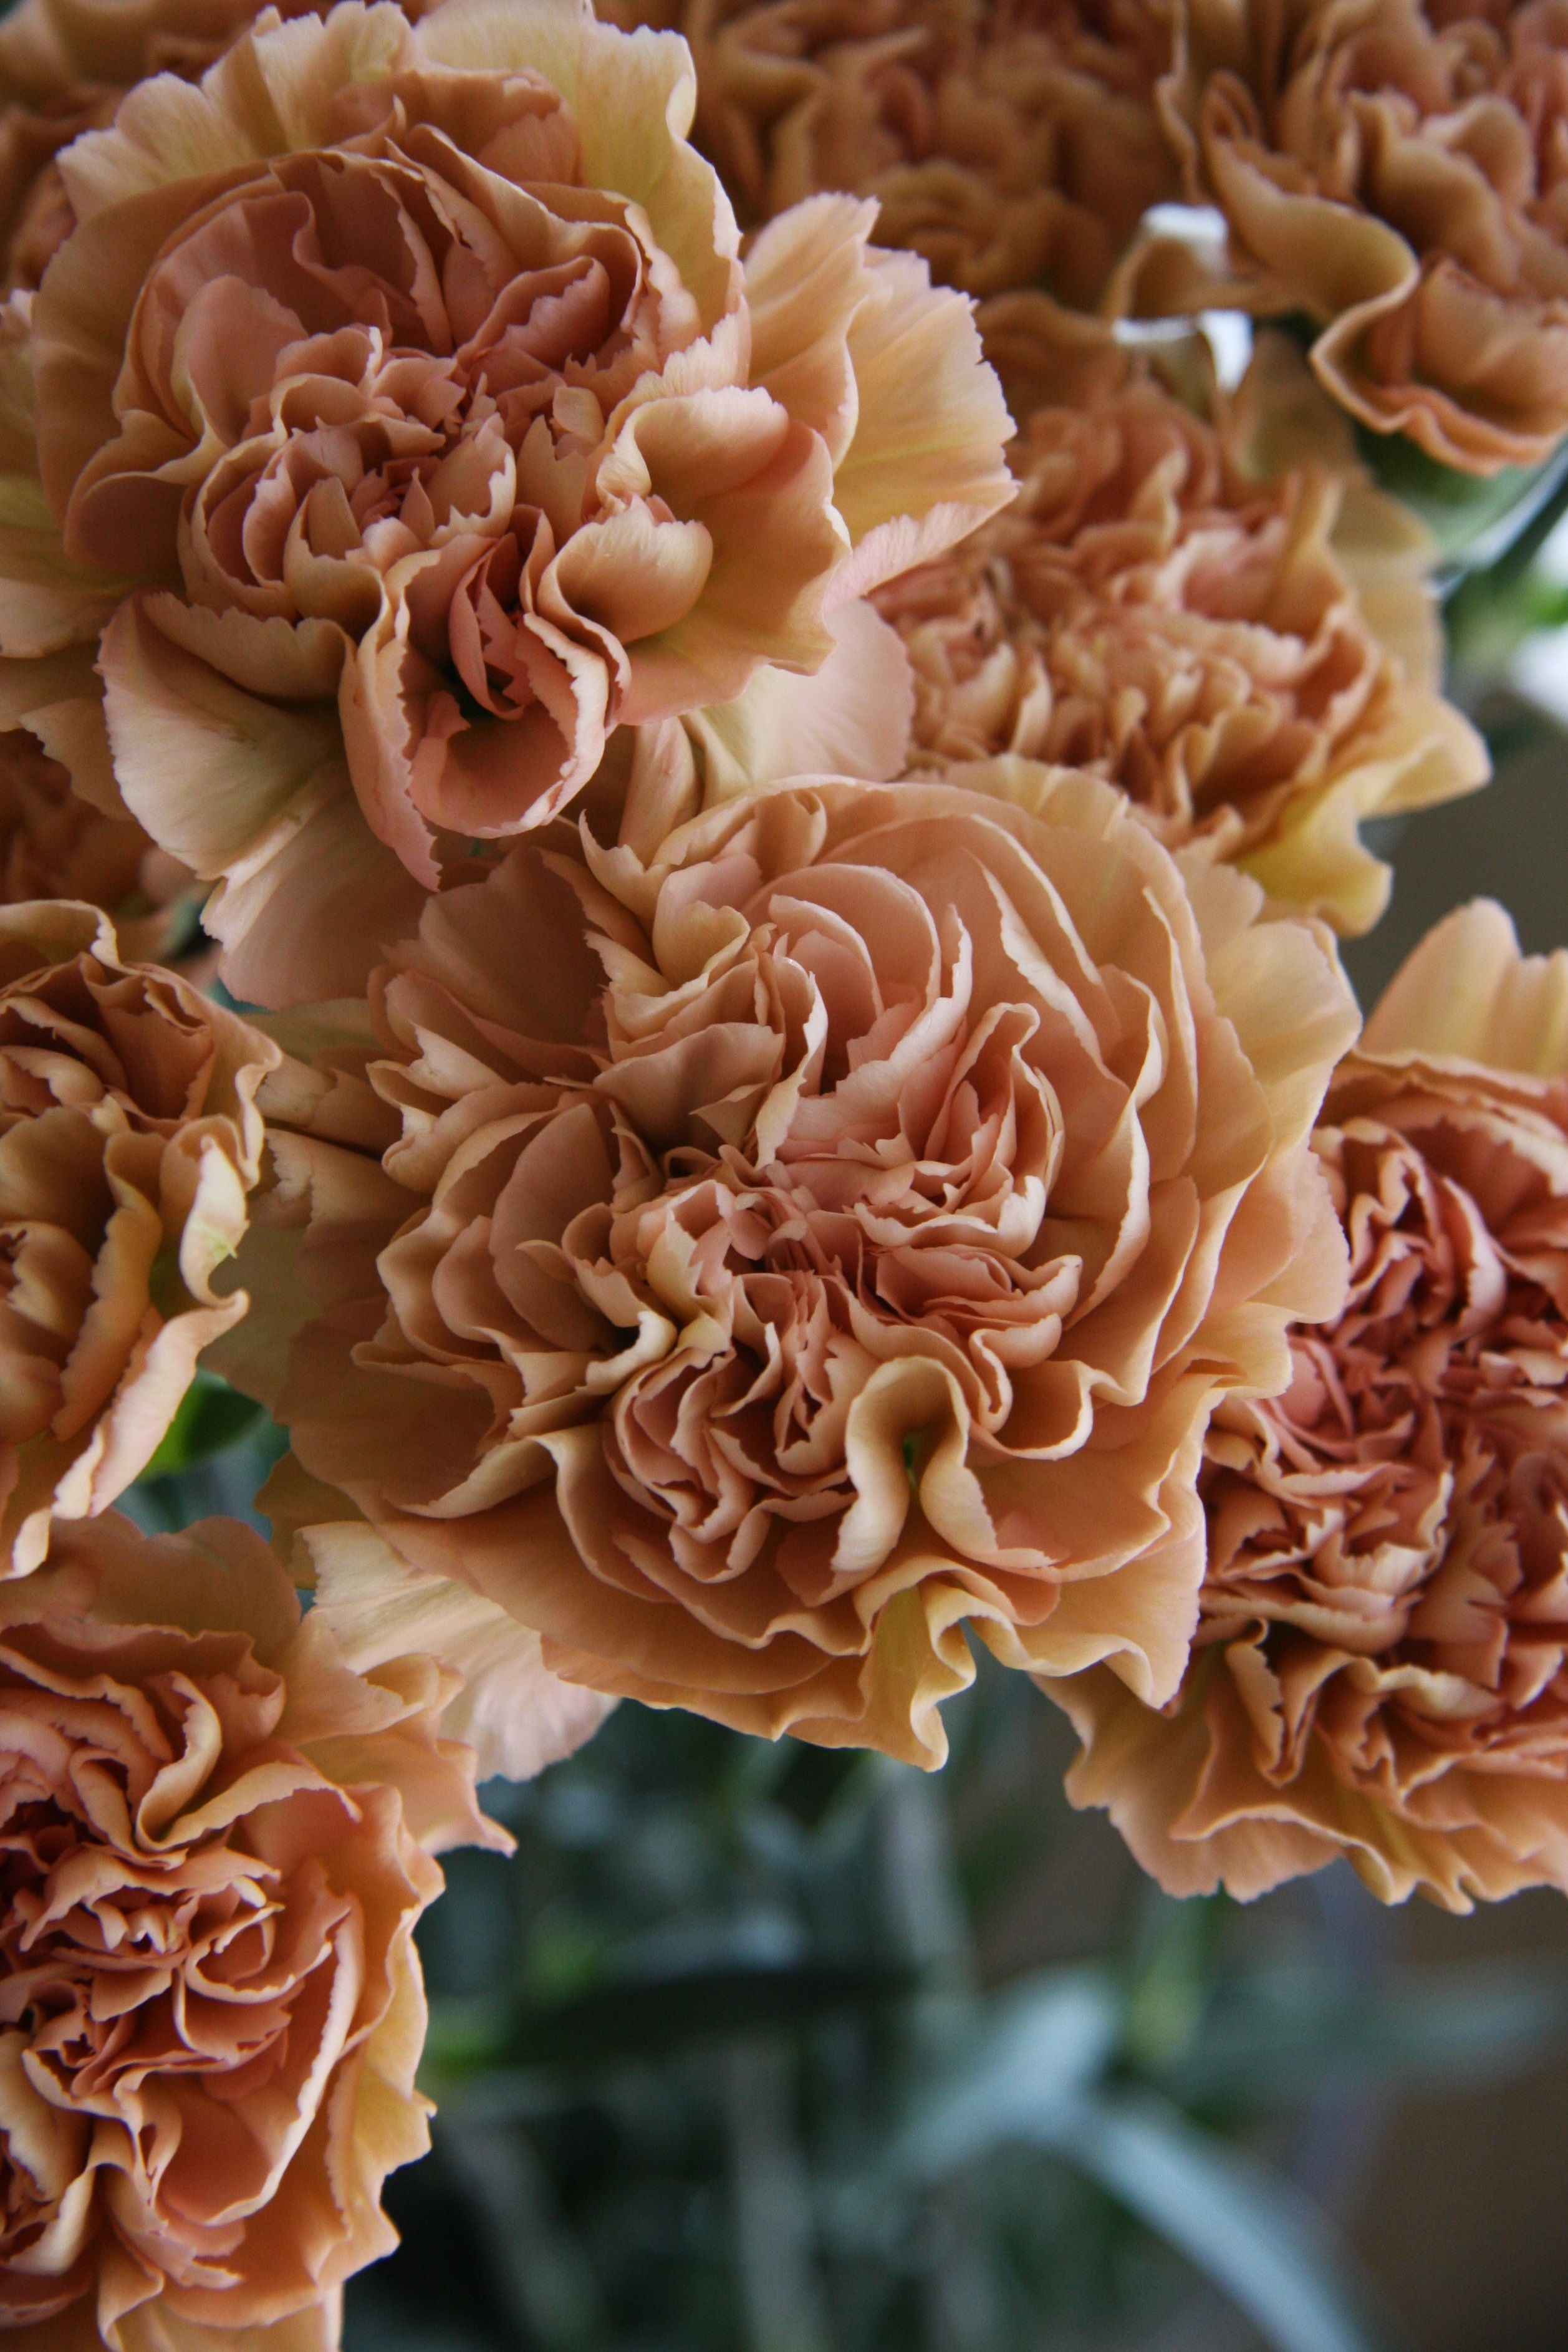 Carnation Love This Color Carnations Carnation Flower Carnation Colors